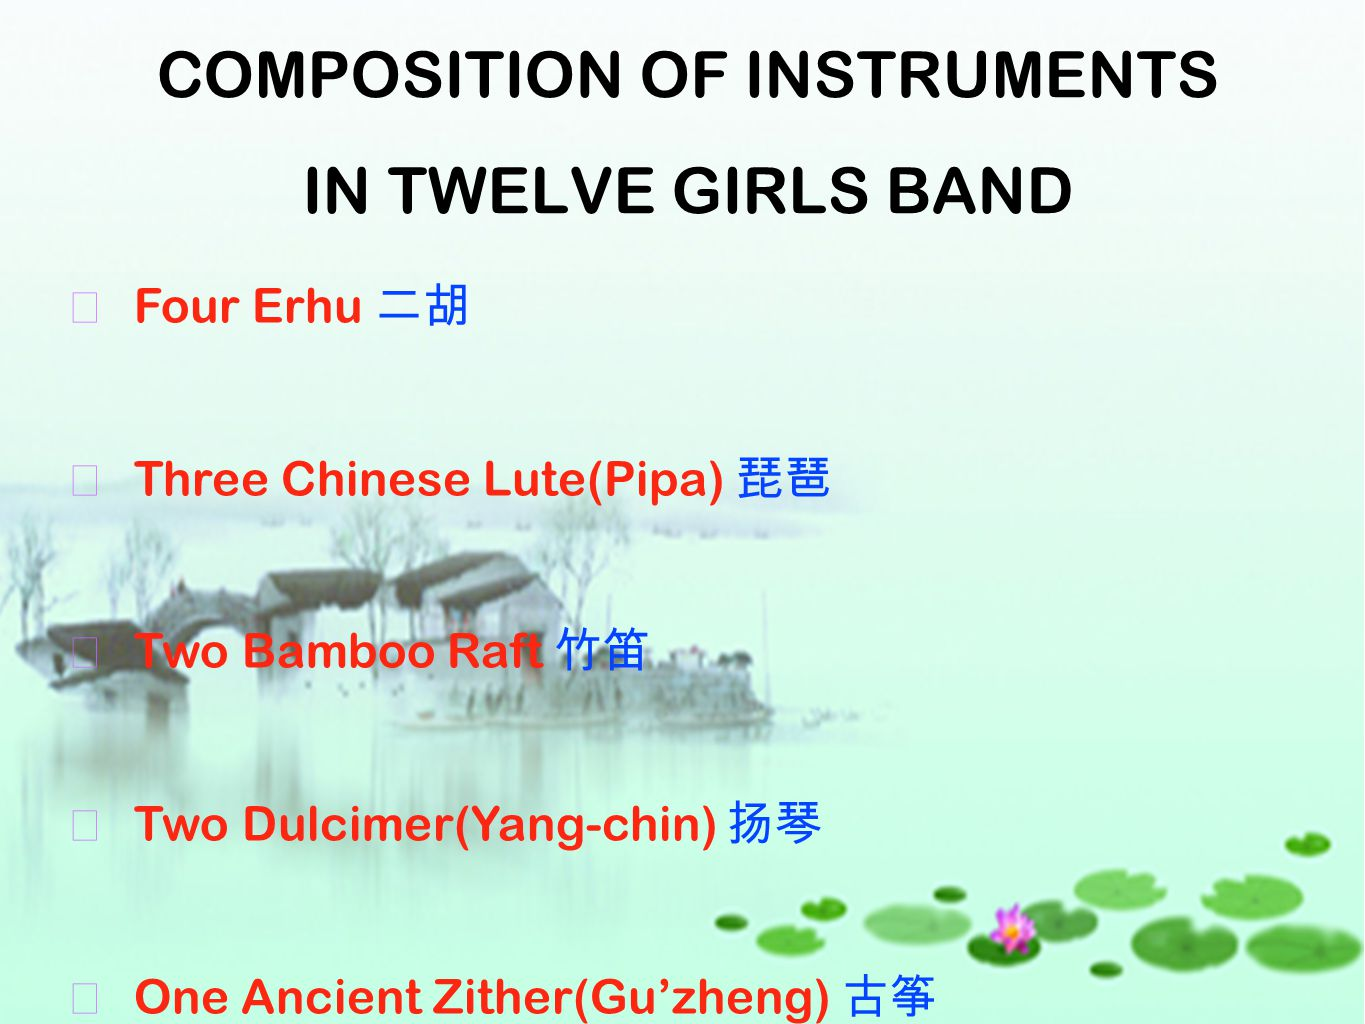 COMPOSITION OF INSTRUMENTS IN TWELVE GIRLS BAND ★ Four Erhu 二胡 ★ Three Chinese Lute(Pipa) 琵琶 ★ Two Bamboo Raft 竹笛 ★ Two Dulcimer(Yang-chin) 扬琴 ★ One A